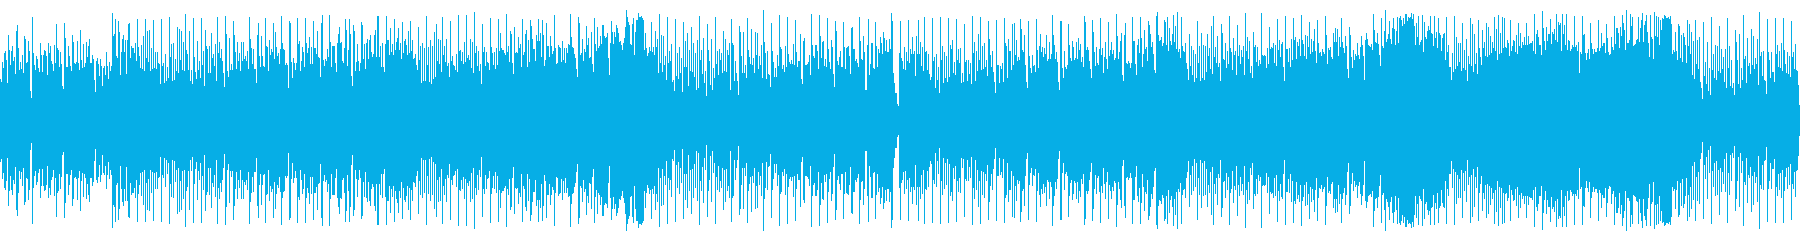 Stylish house-style chip tune's reproduced waveform